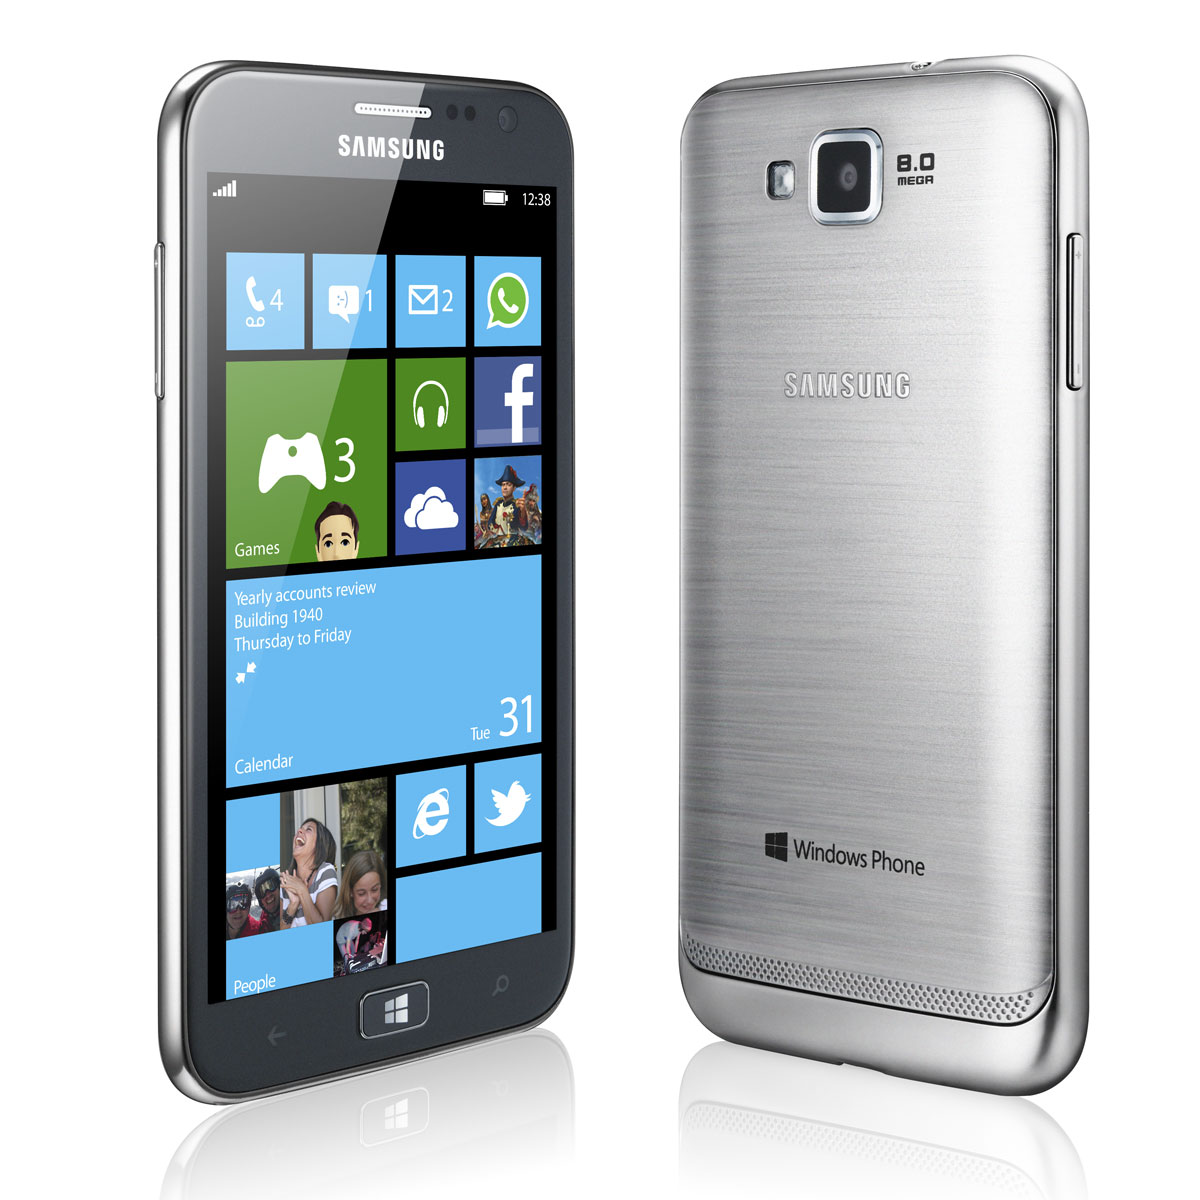 samsung ativ s 16 go gt i8750alaxef achat vente mobile smartphone sur. Black Bedroom Furniture Sets. Home Design Ideas